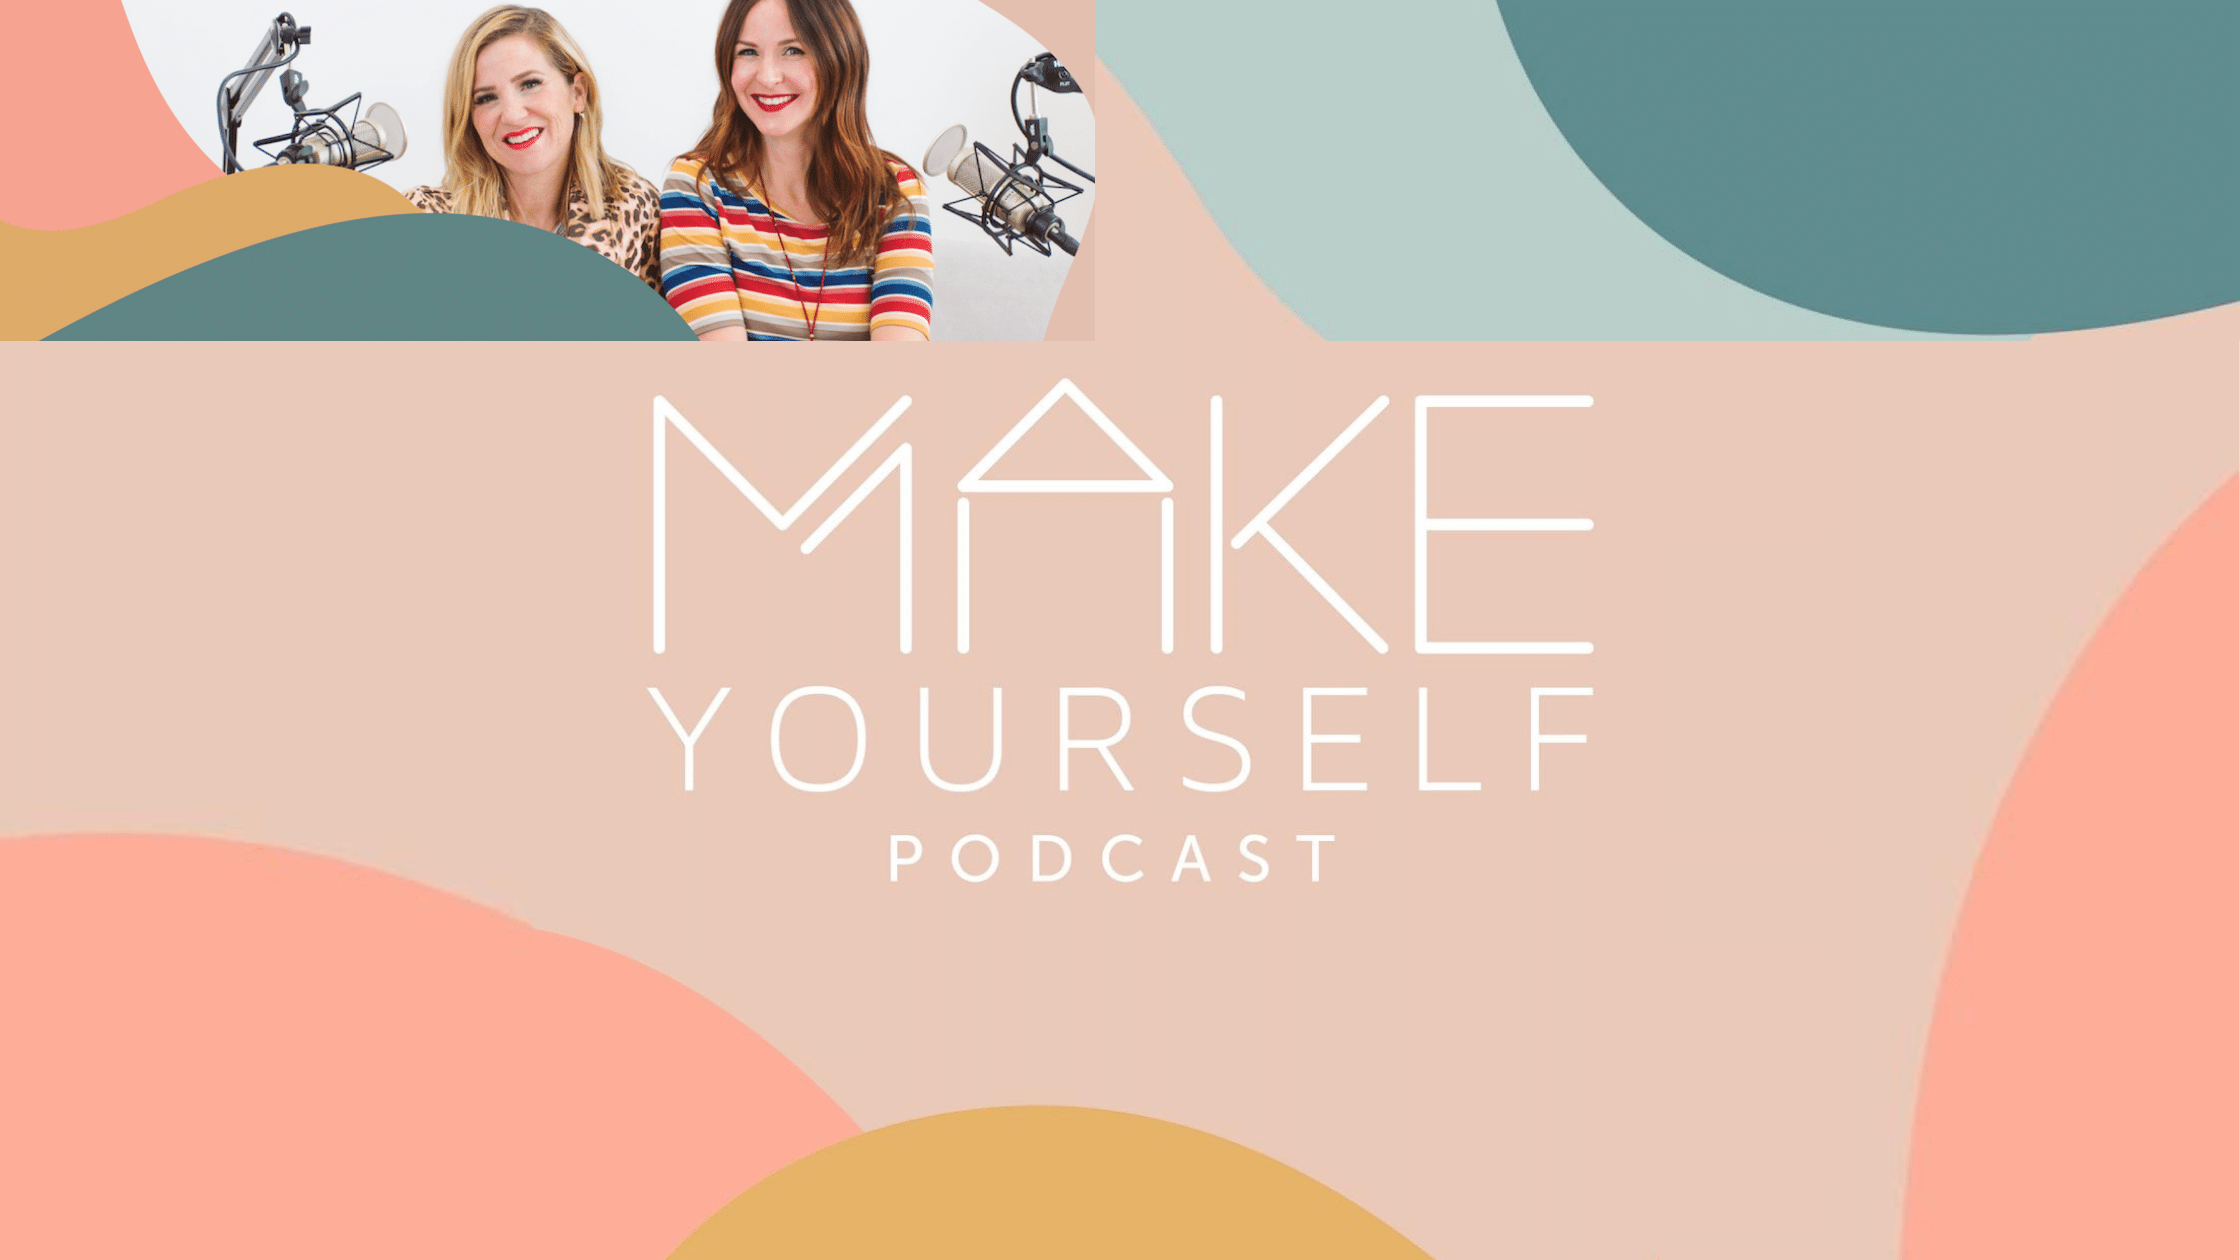 Cover image for Make Yourself Podcast: Women's Working Challenges and pictures of hosts Jill Brady and Amelia Lyon, advertising their discussion with Boulo's Delphine Carter